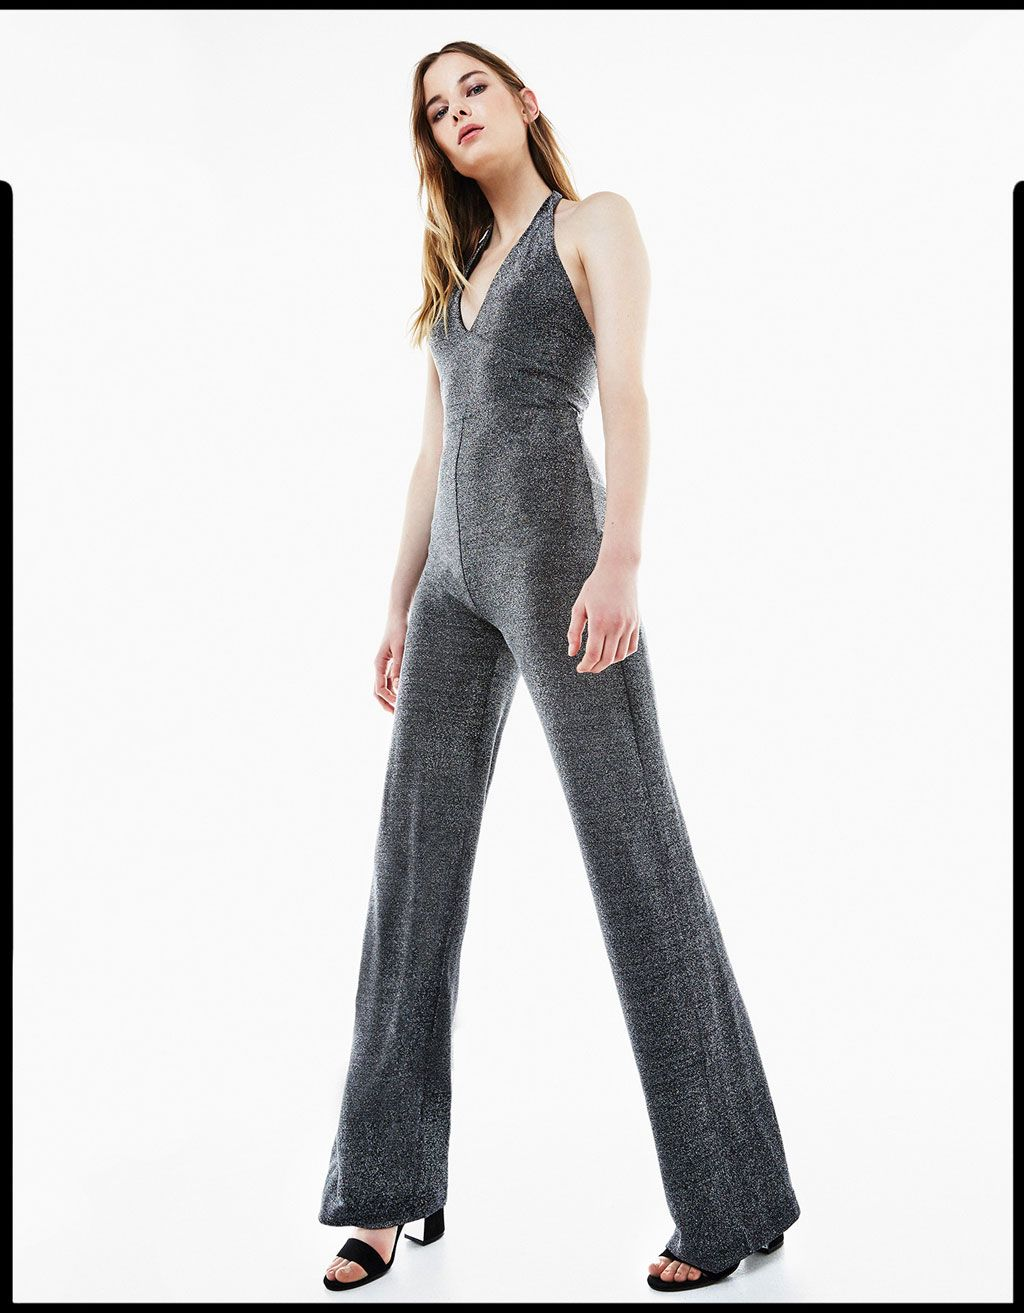 7cd39da21a3 Long halter neck metallic shimmer jumpsuit - Party Looks - Bershka United  Kingdom